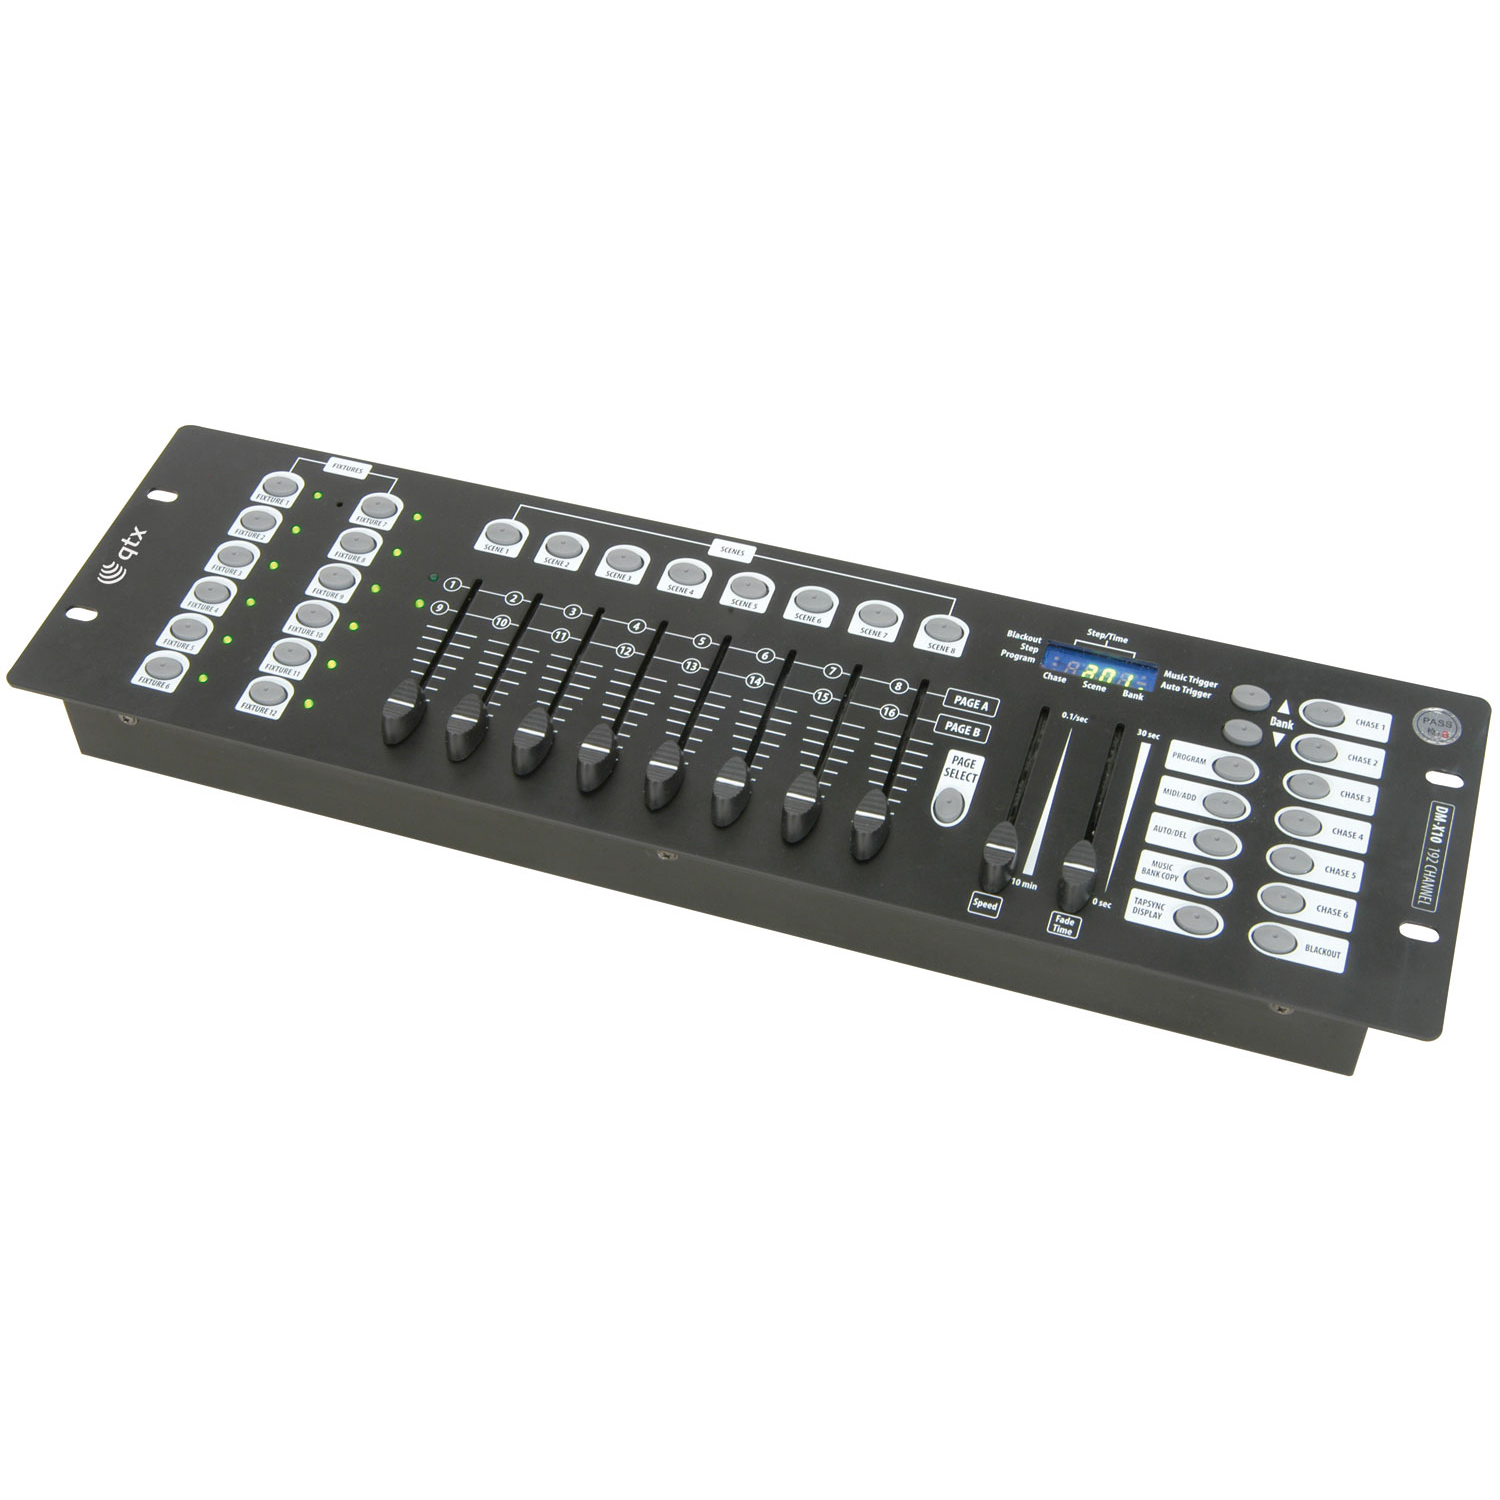 192 Channel DMX Lighting Controller